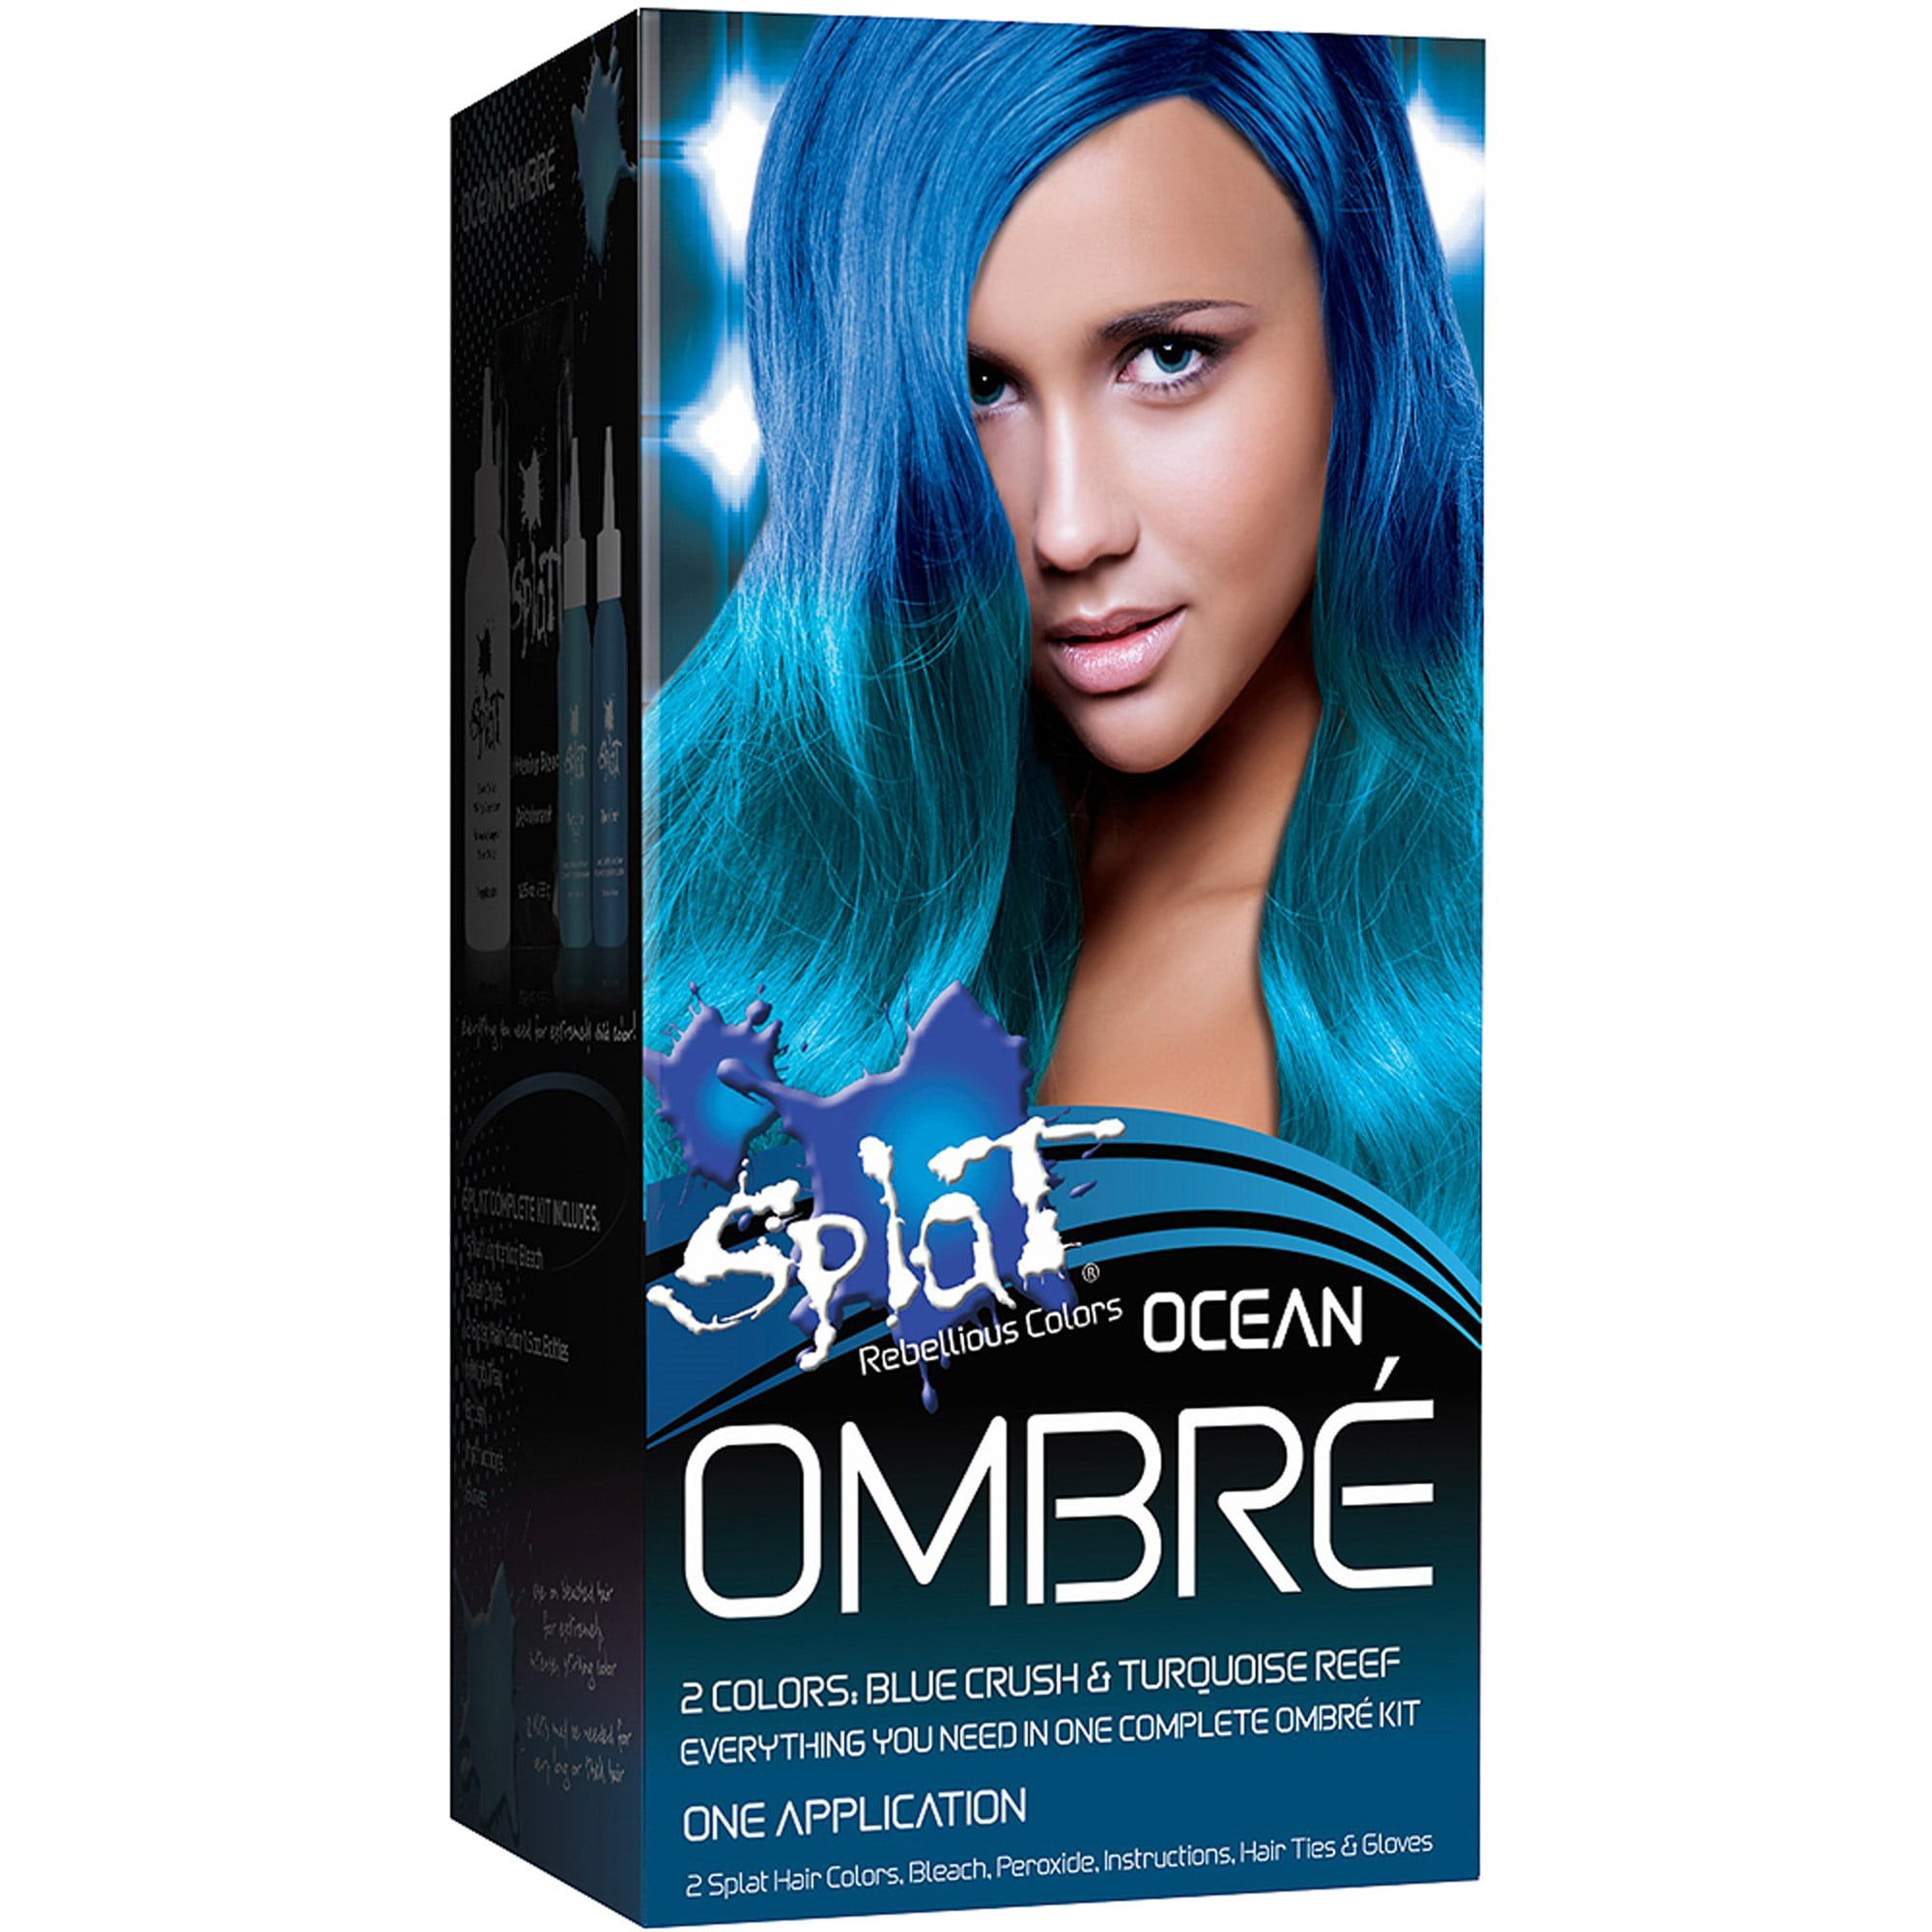 Splat Rebellious Colors Ombre Semi Perm Hair Color Kit Fire Color